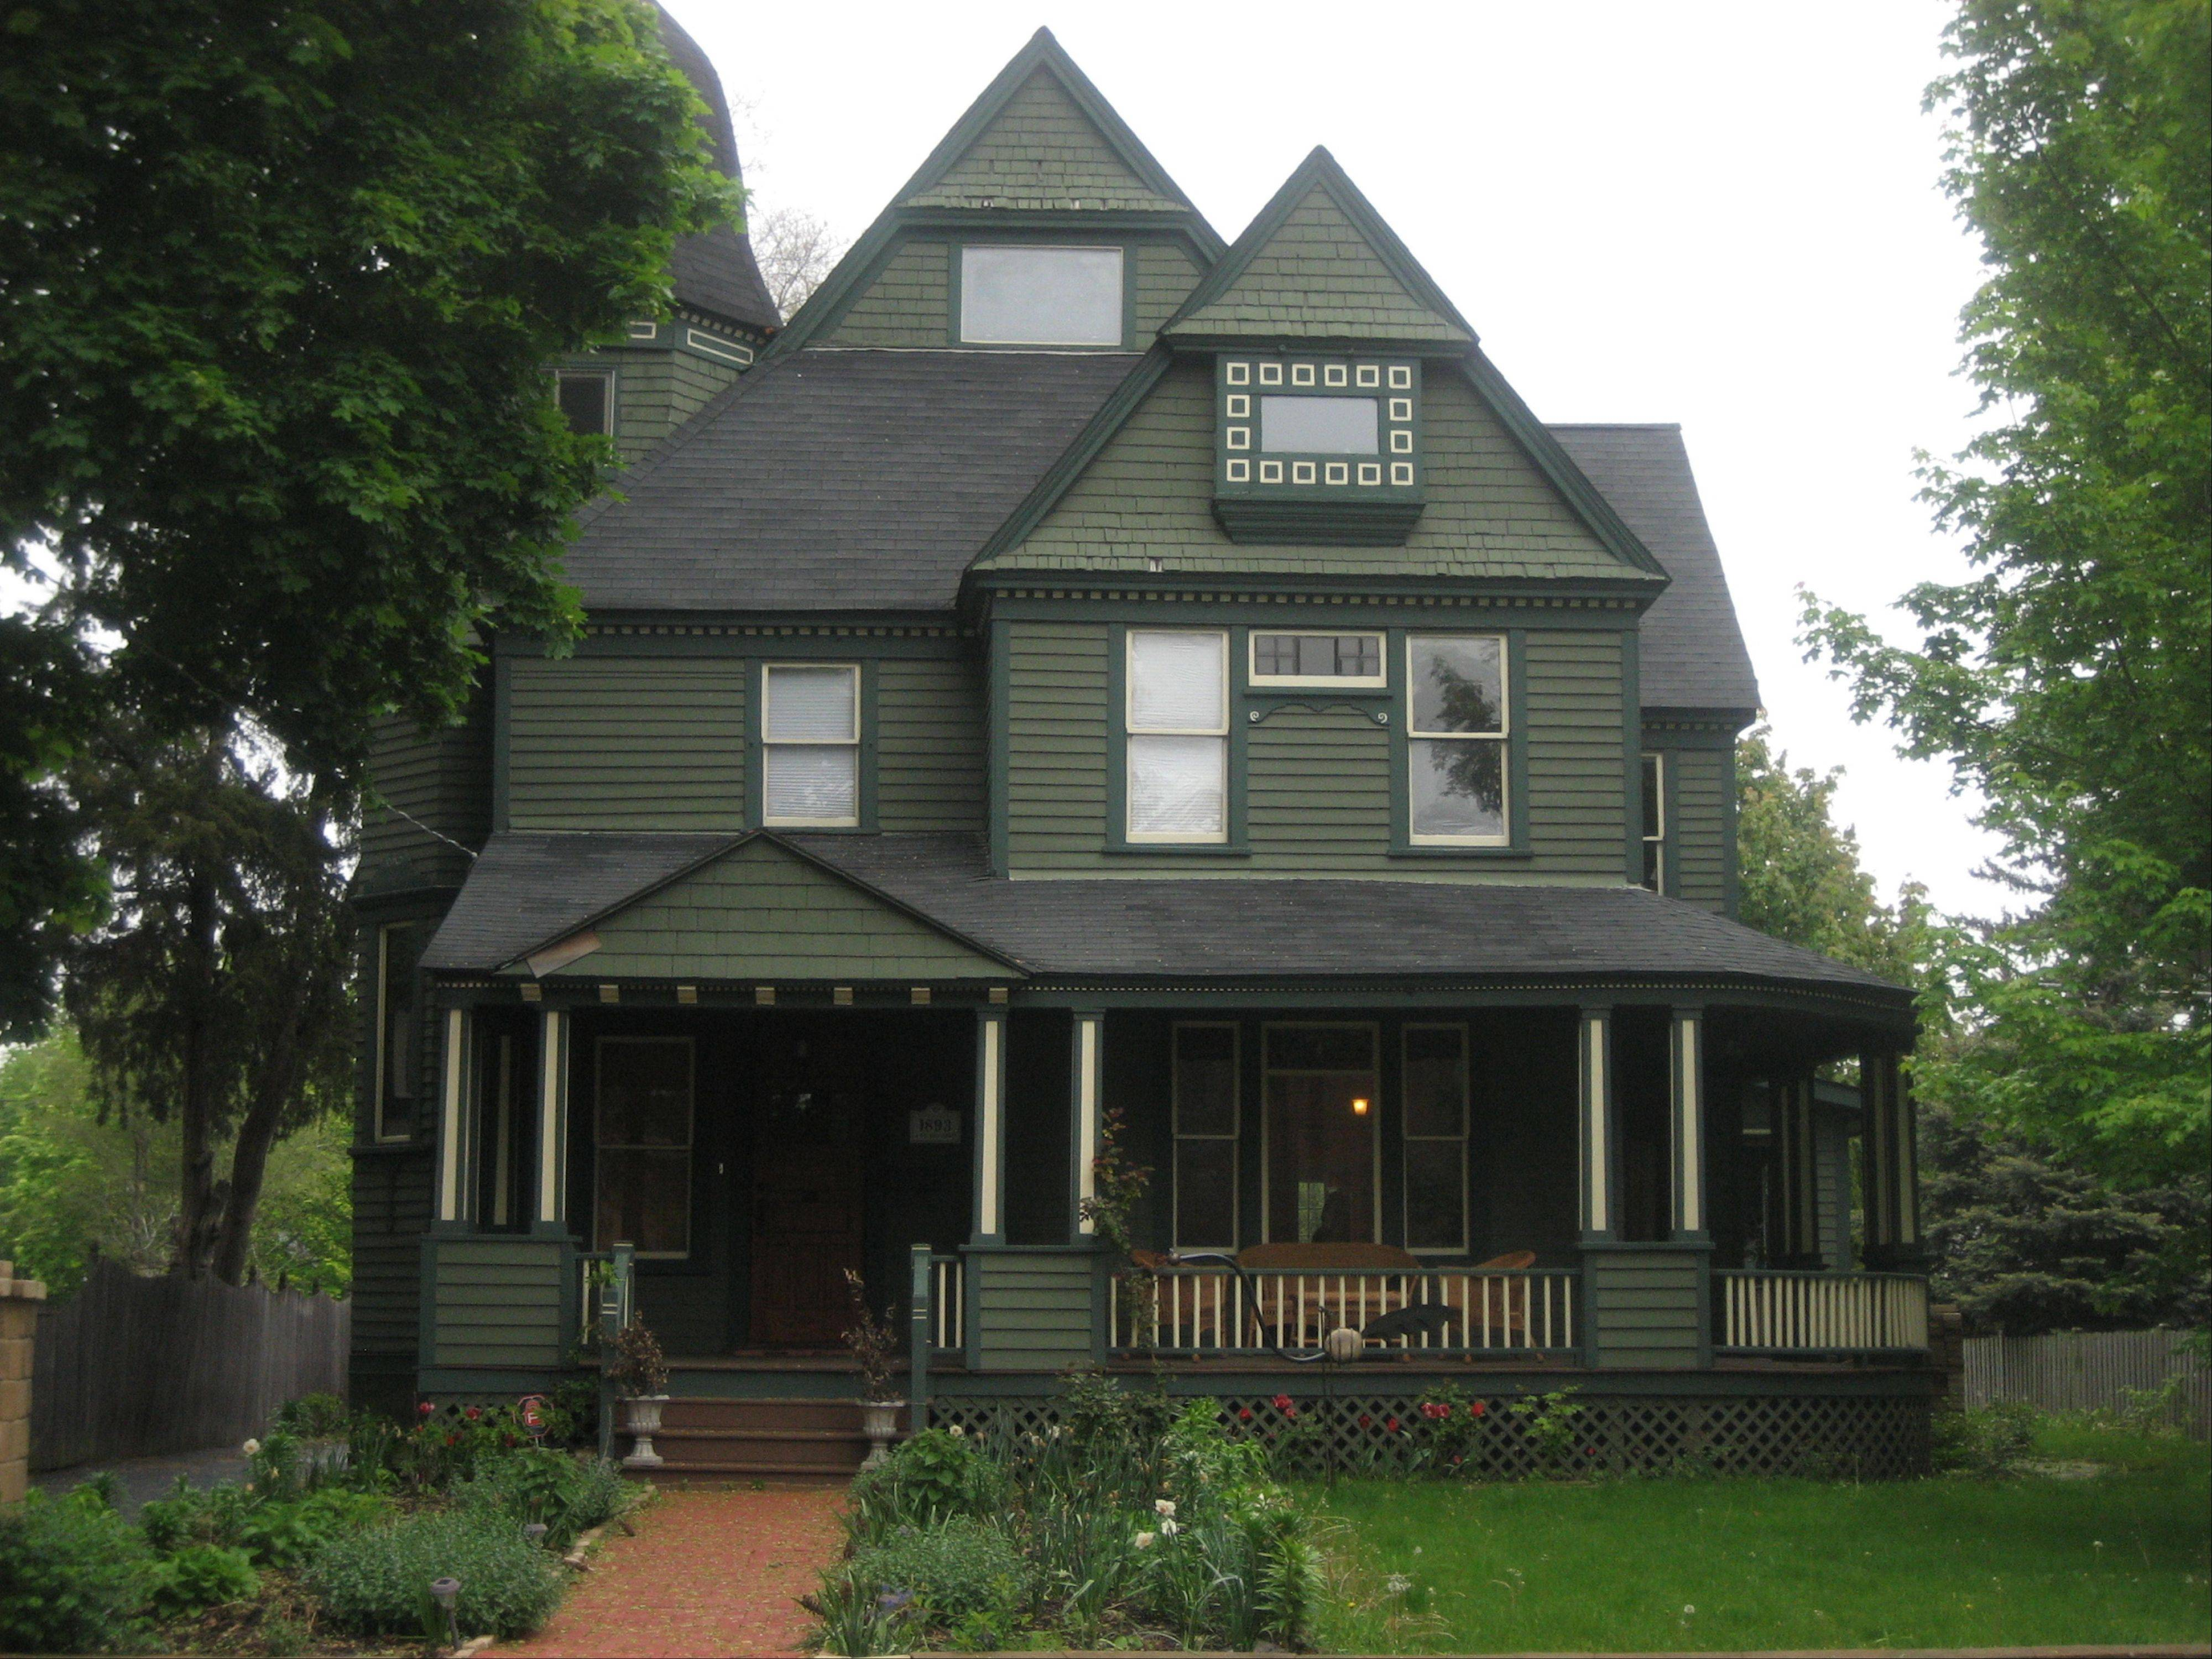 The Queen Anne-style home at 331 Griswold St., built in 1893, was part of the Gifford Park Association�s 31st annual Historic Elgin House tour Saturday.